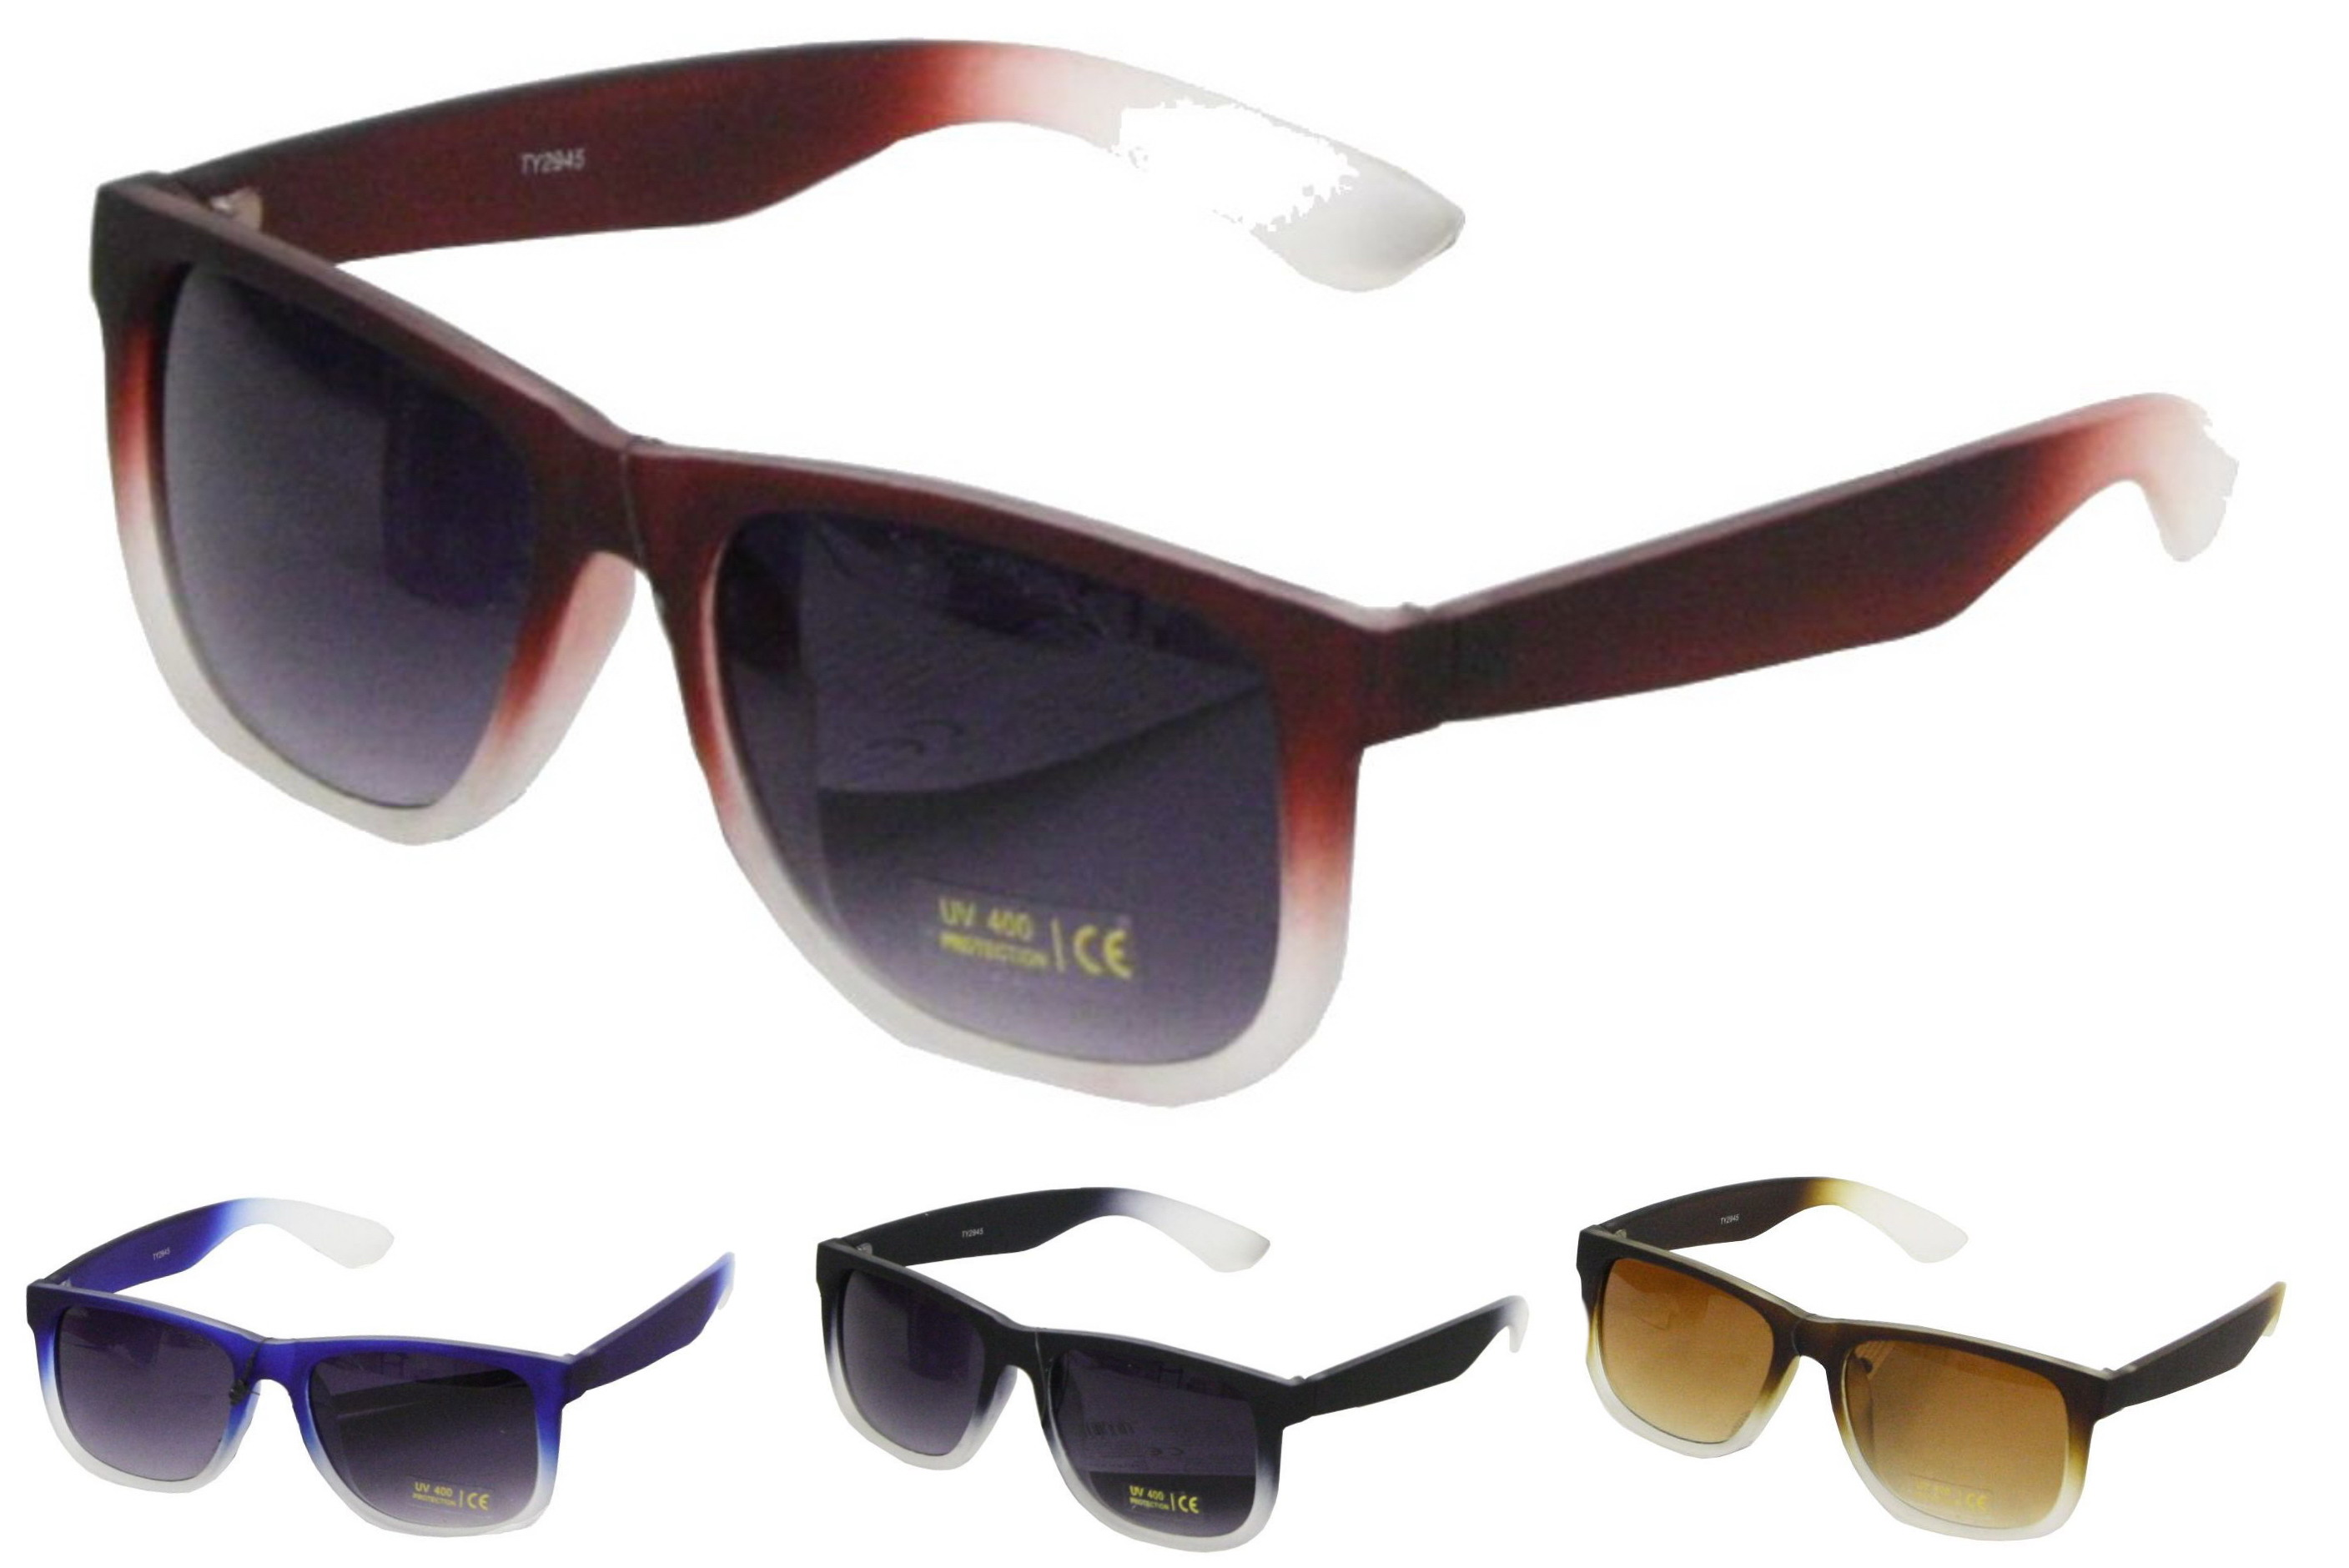 Adult Rubberised Framed Sunglasses - 4 Assorted